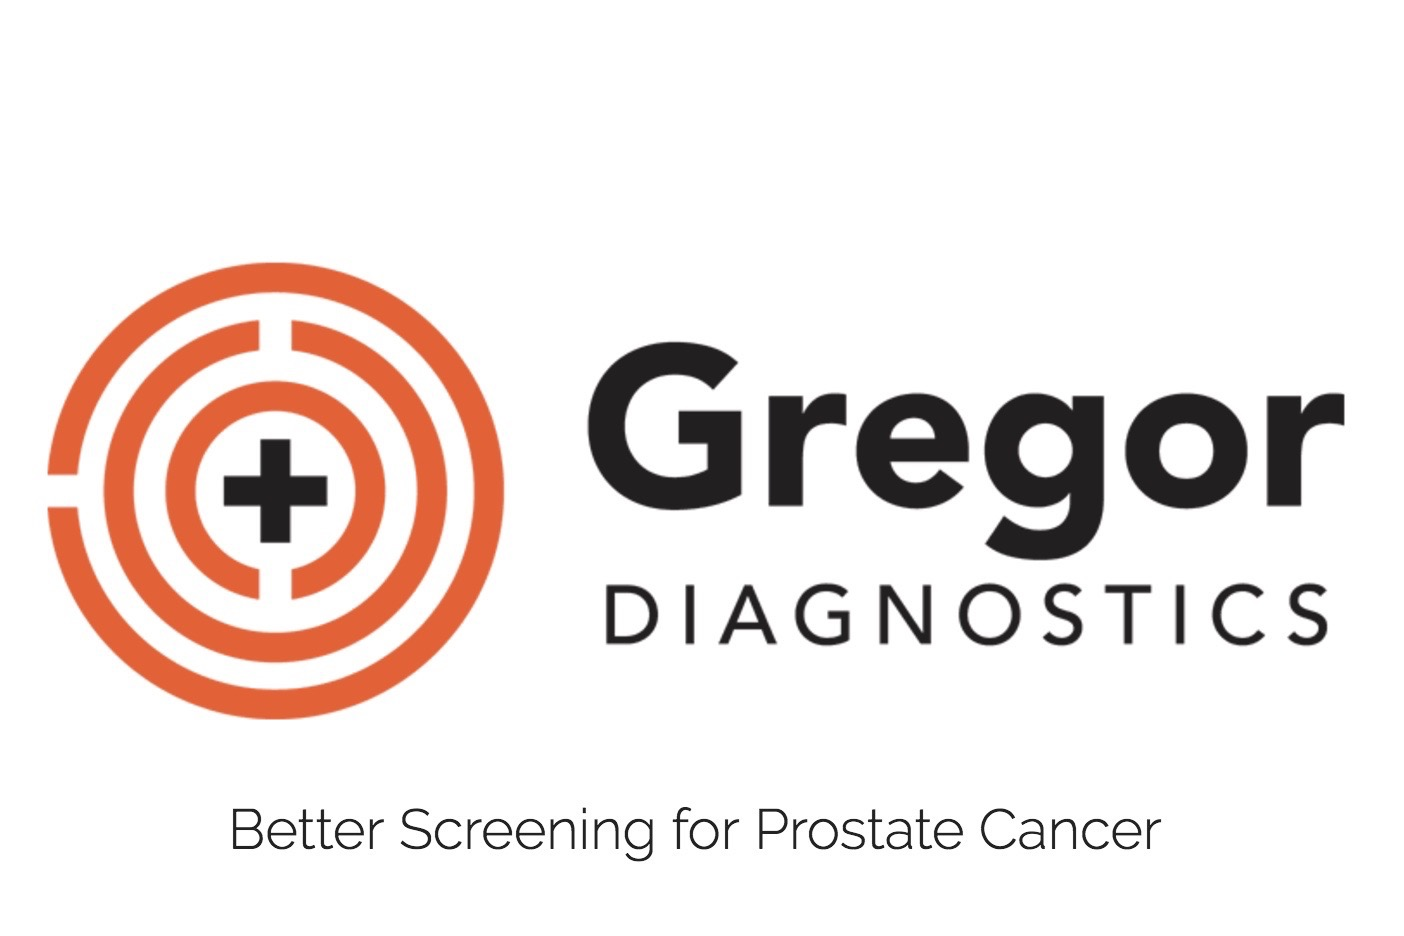 Gregor Diagnostics logo